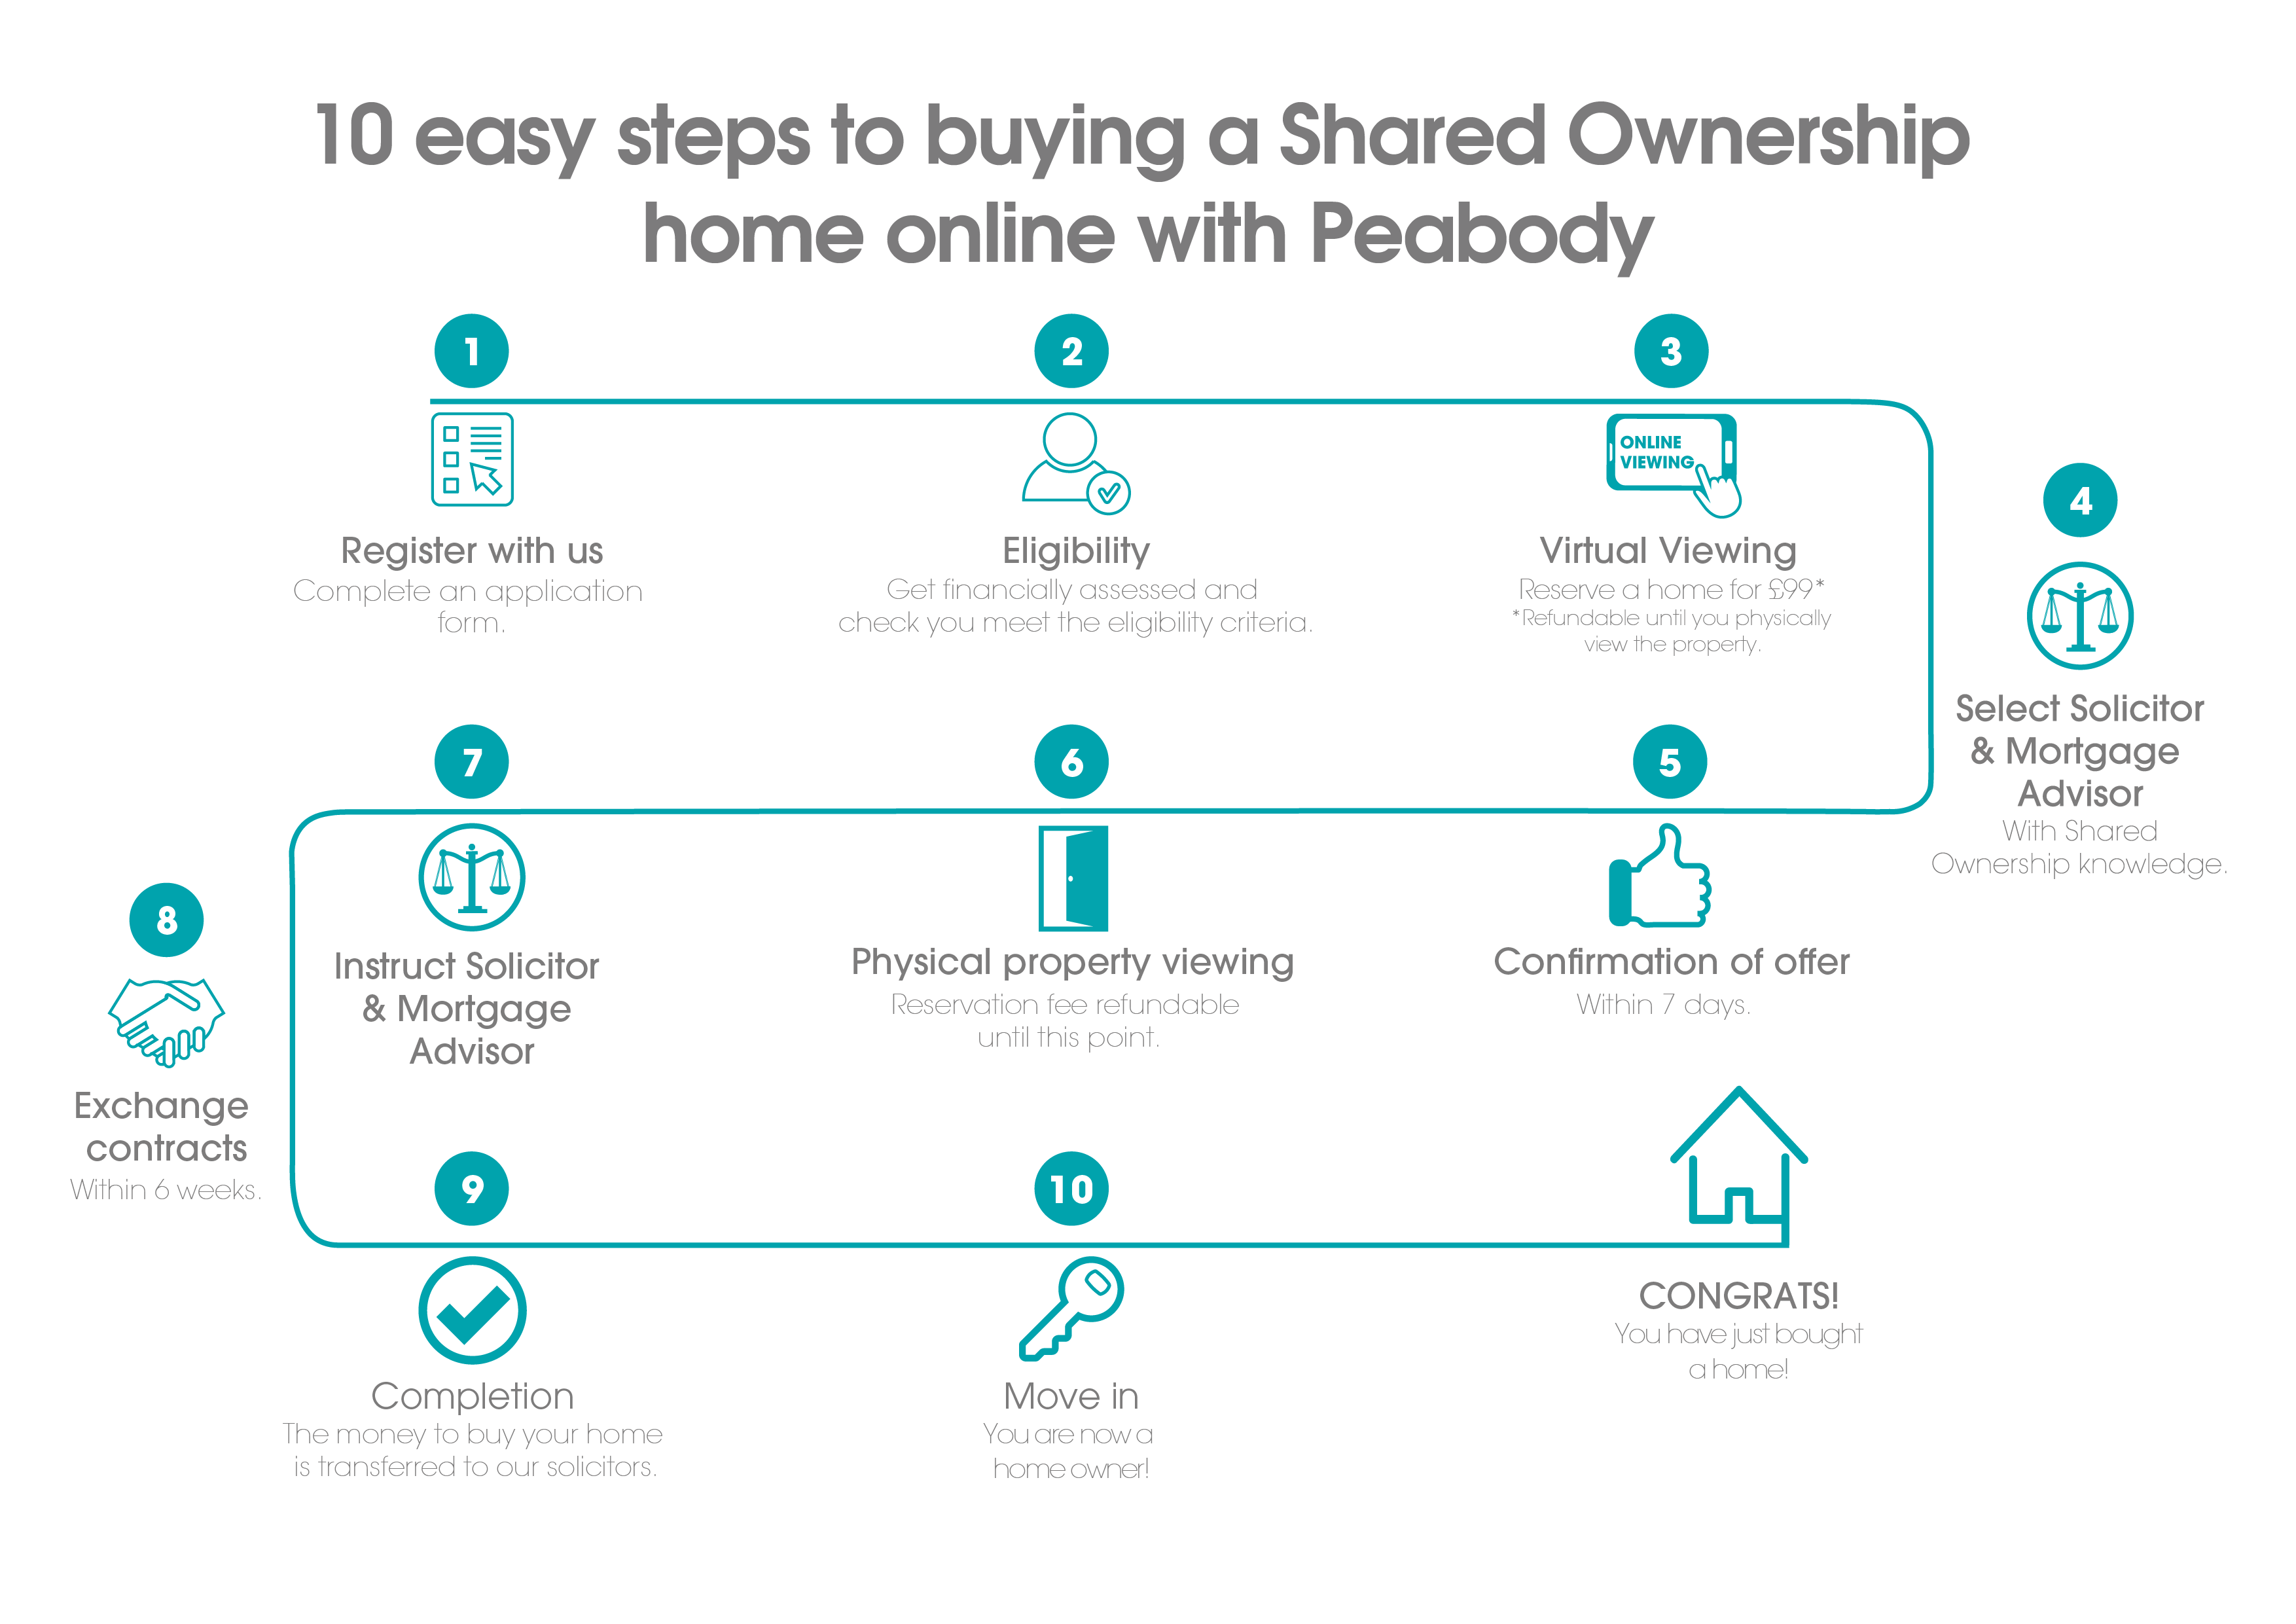 Online purchase journey for Shared Ownership